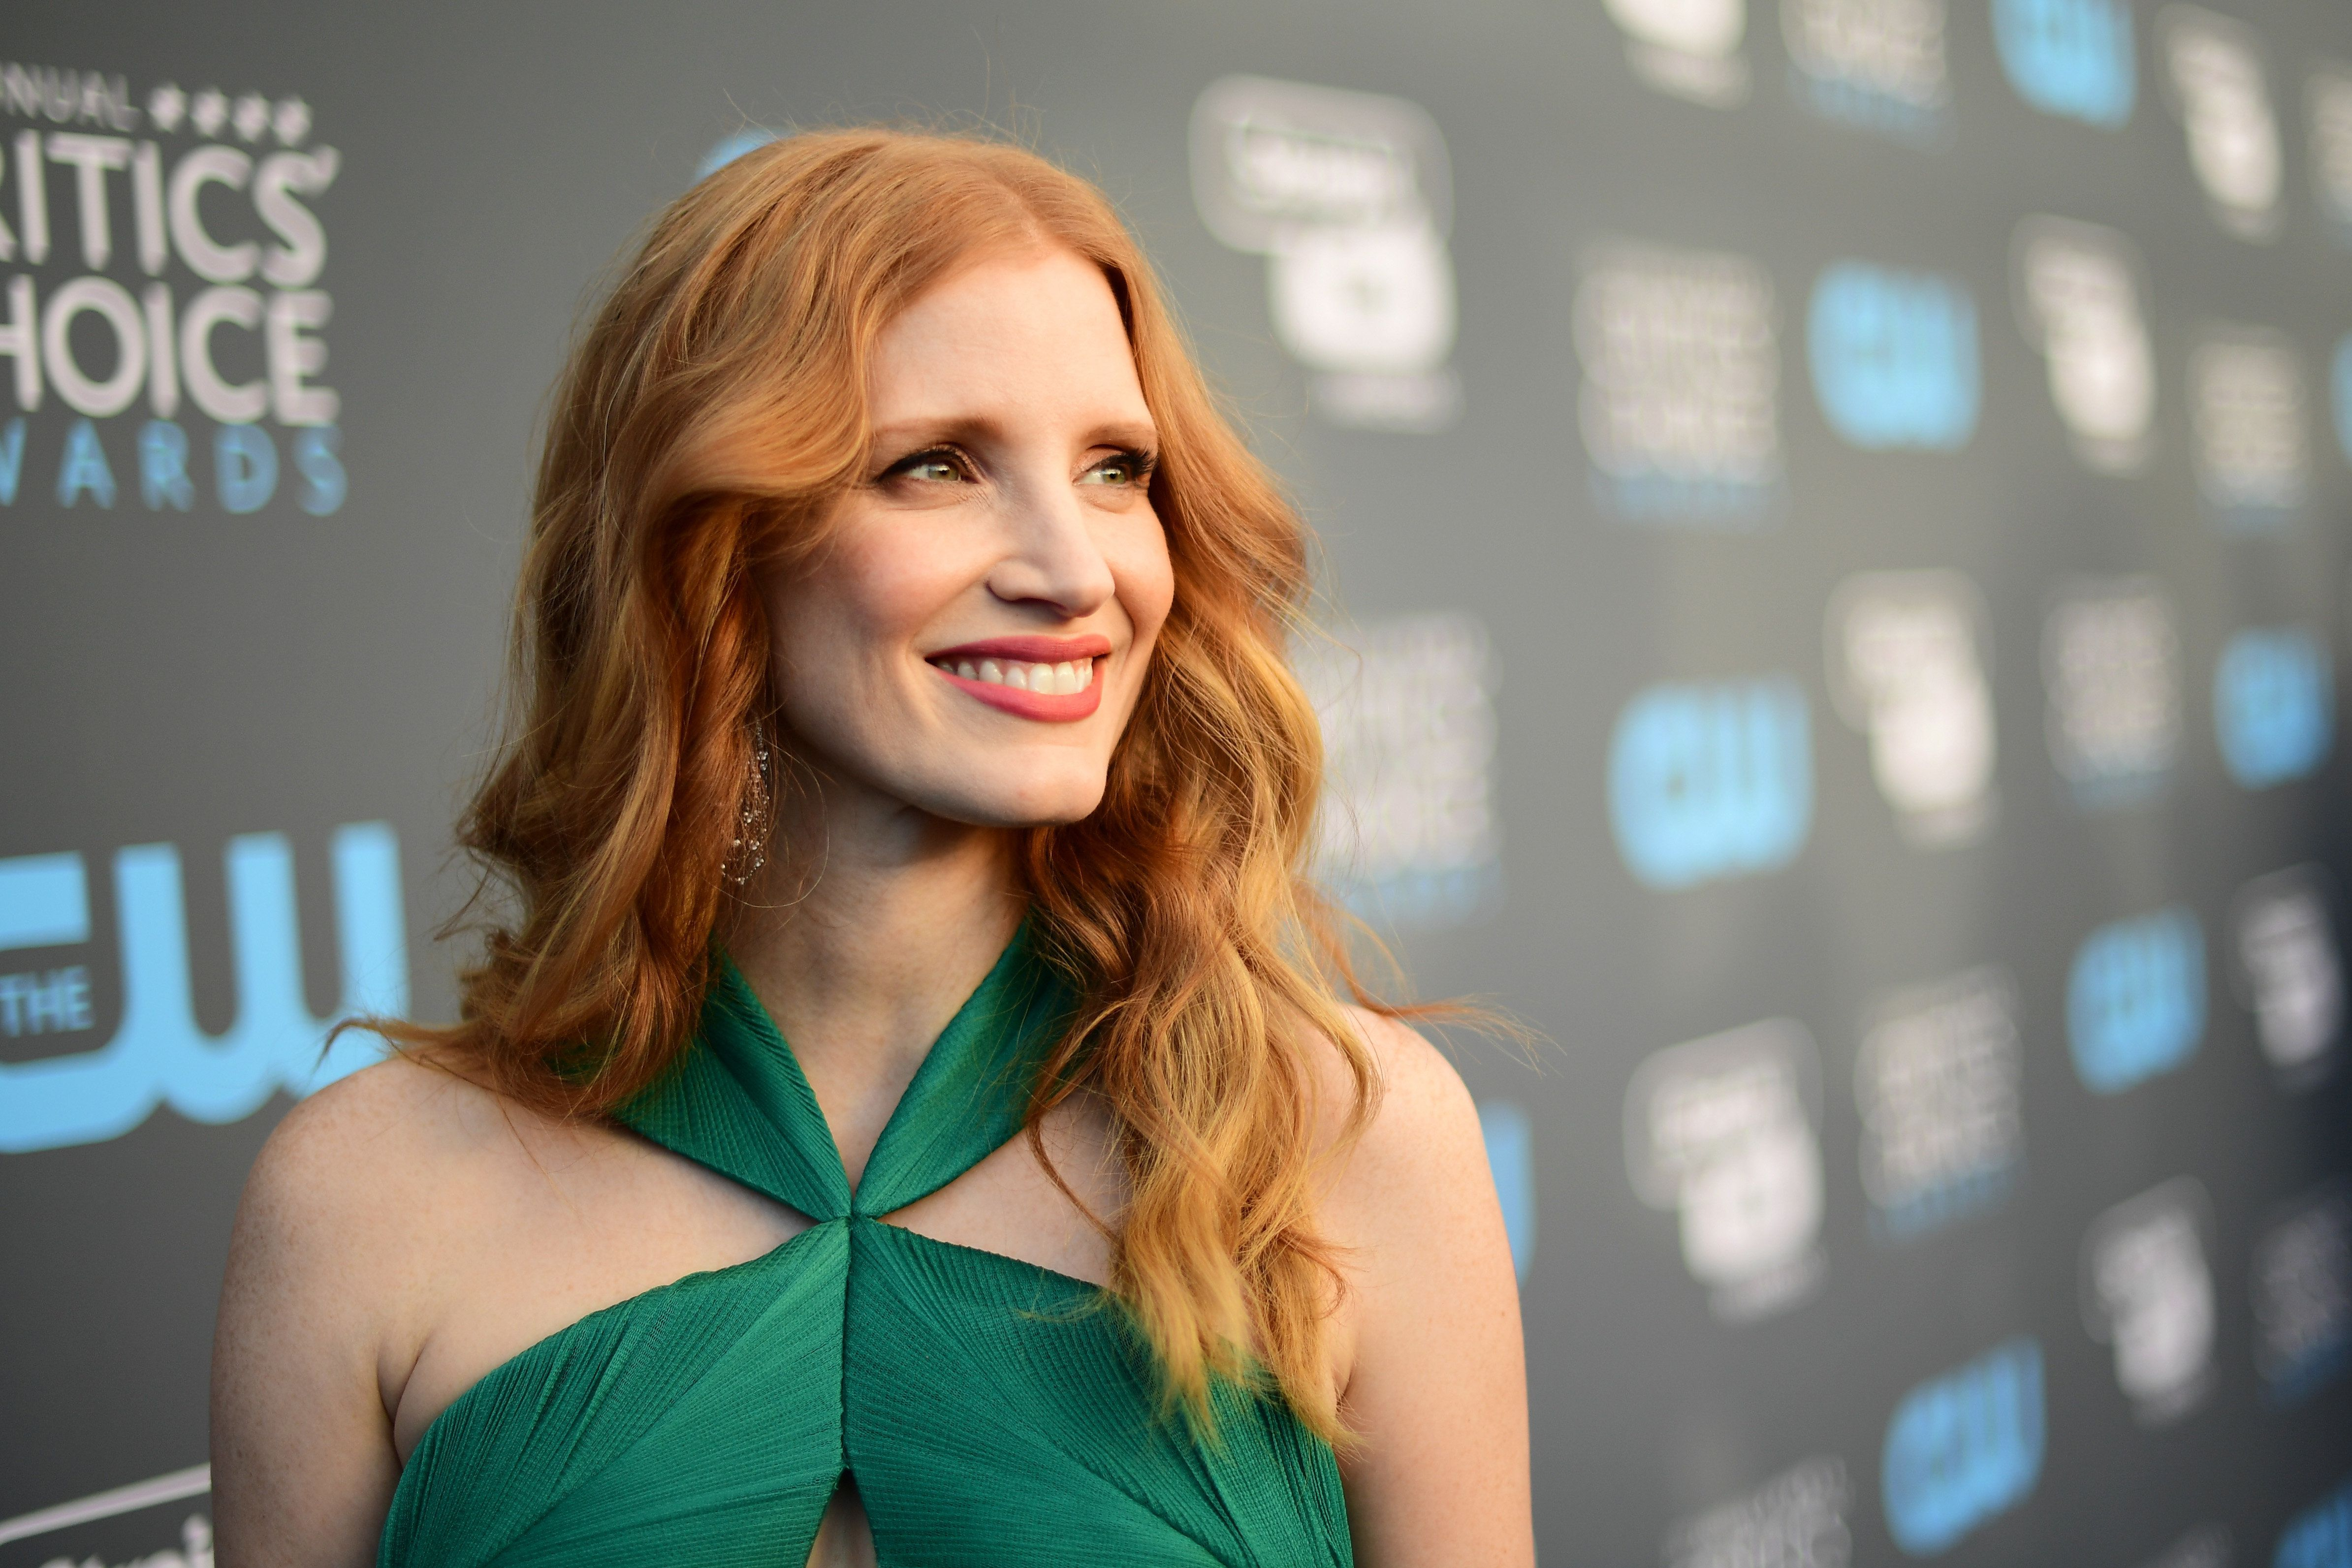 SANTA MONICA, CA - JANUARY 11:  Actor Jessica Chastain attends The 23rd Annual Critics' Choice Awards at Barker Hangar on January 11, 2018 in Santa Monica, California.  (Photo by Matt Winkelmeyer/Getty Images for The Critics' Choice Awards  )